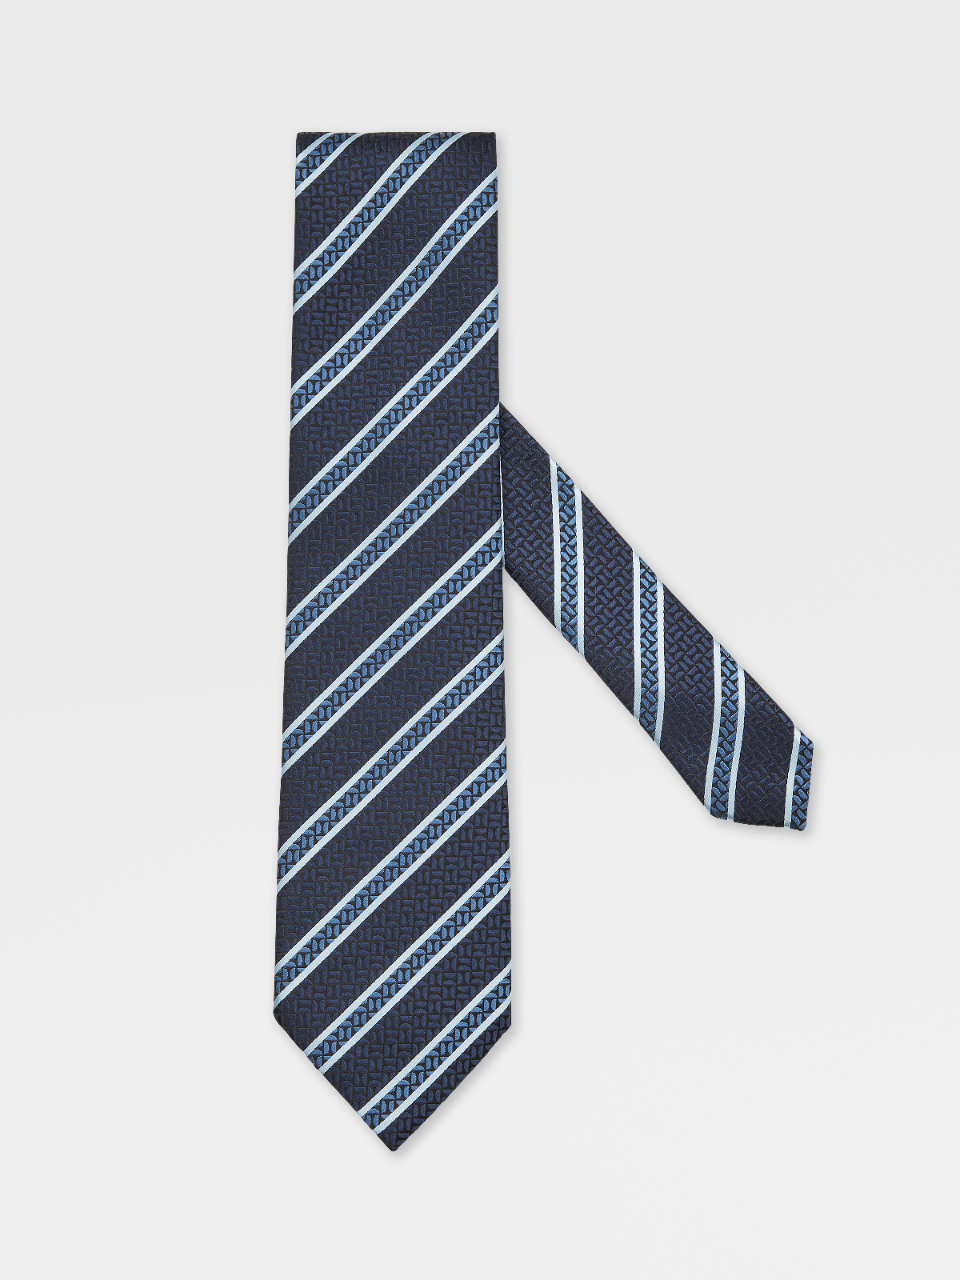 Jacquard Silk Regimental Tie